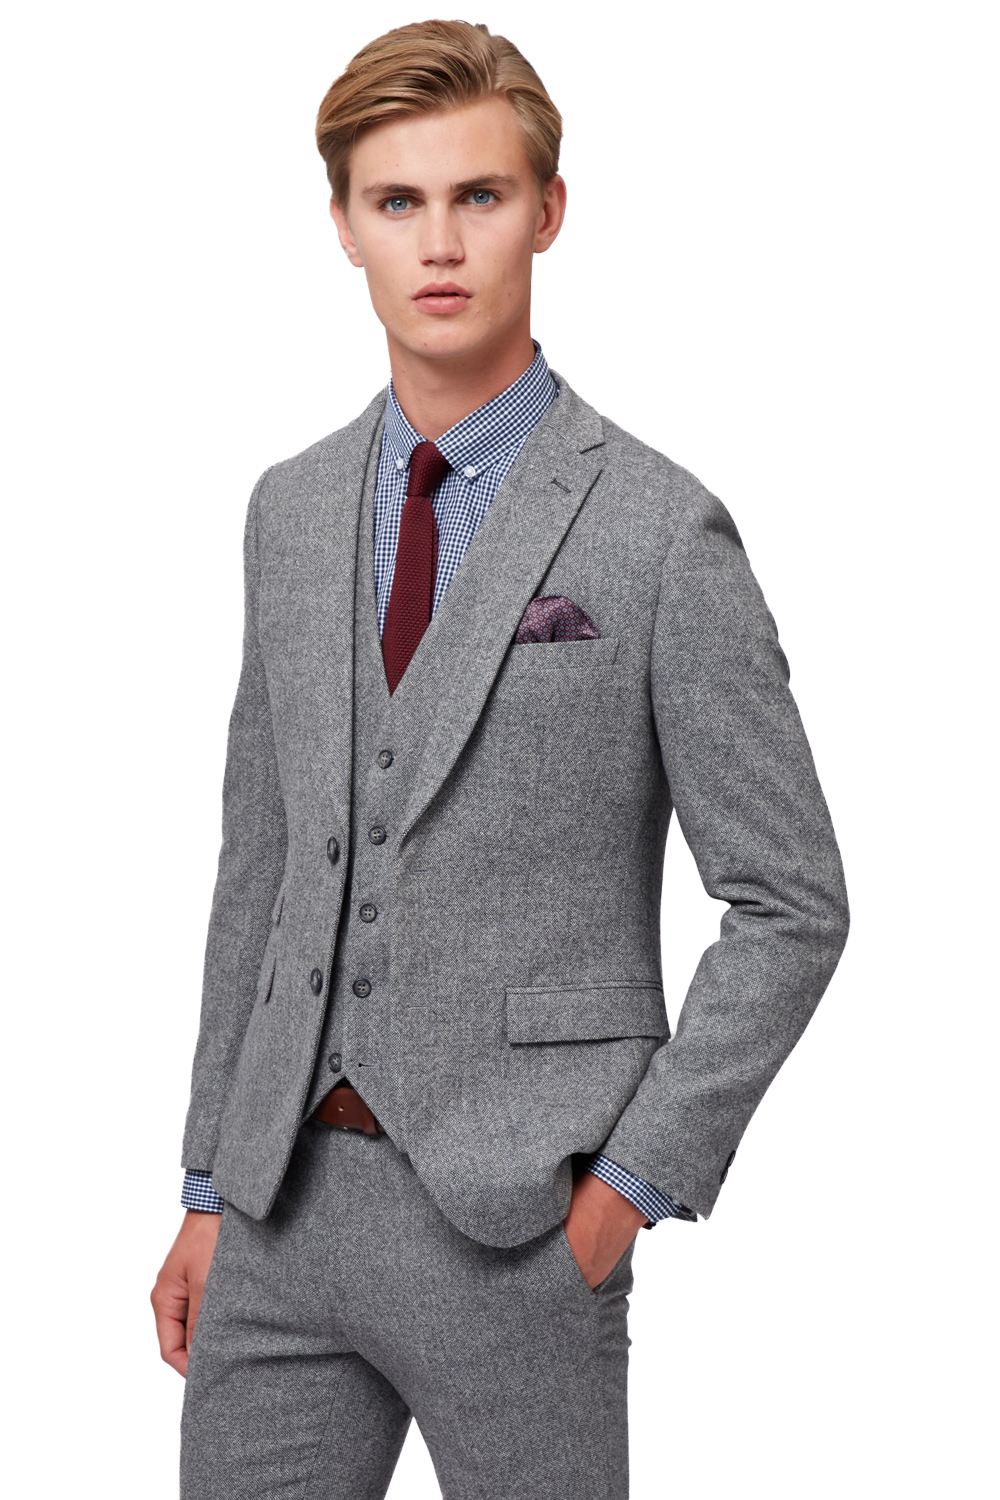 Moss Bros Mens Light Grey Donegal Suit Jacket